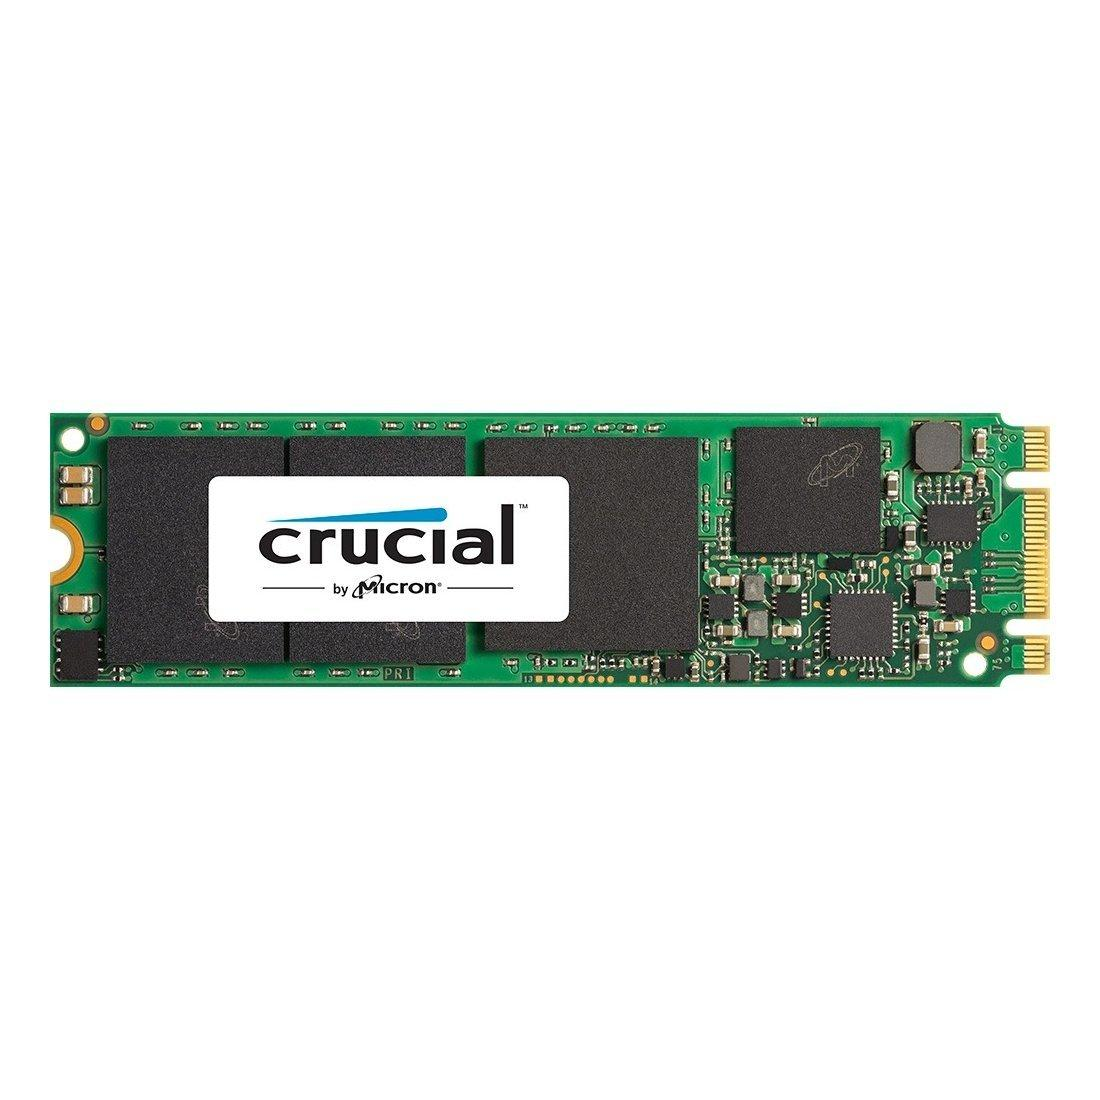 Crucial MX200 500GB m.2 Internal Solid State Drive